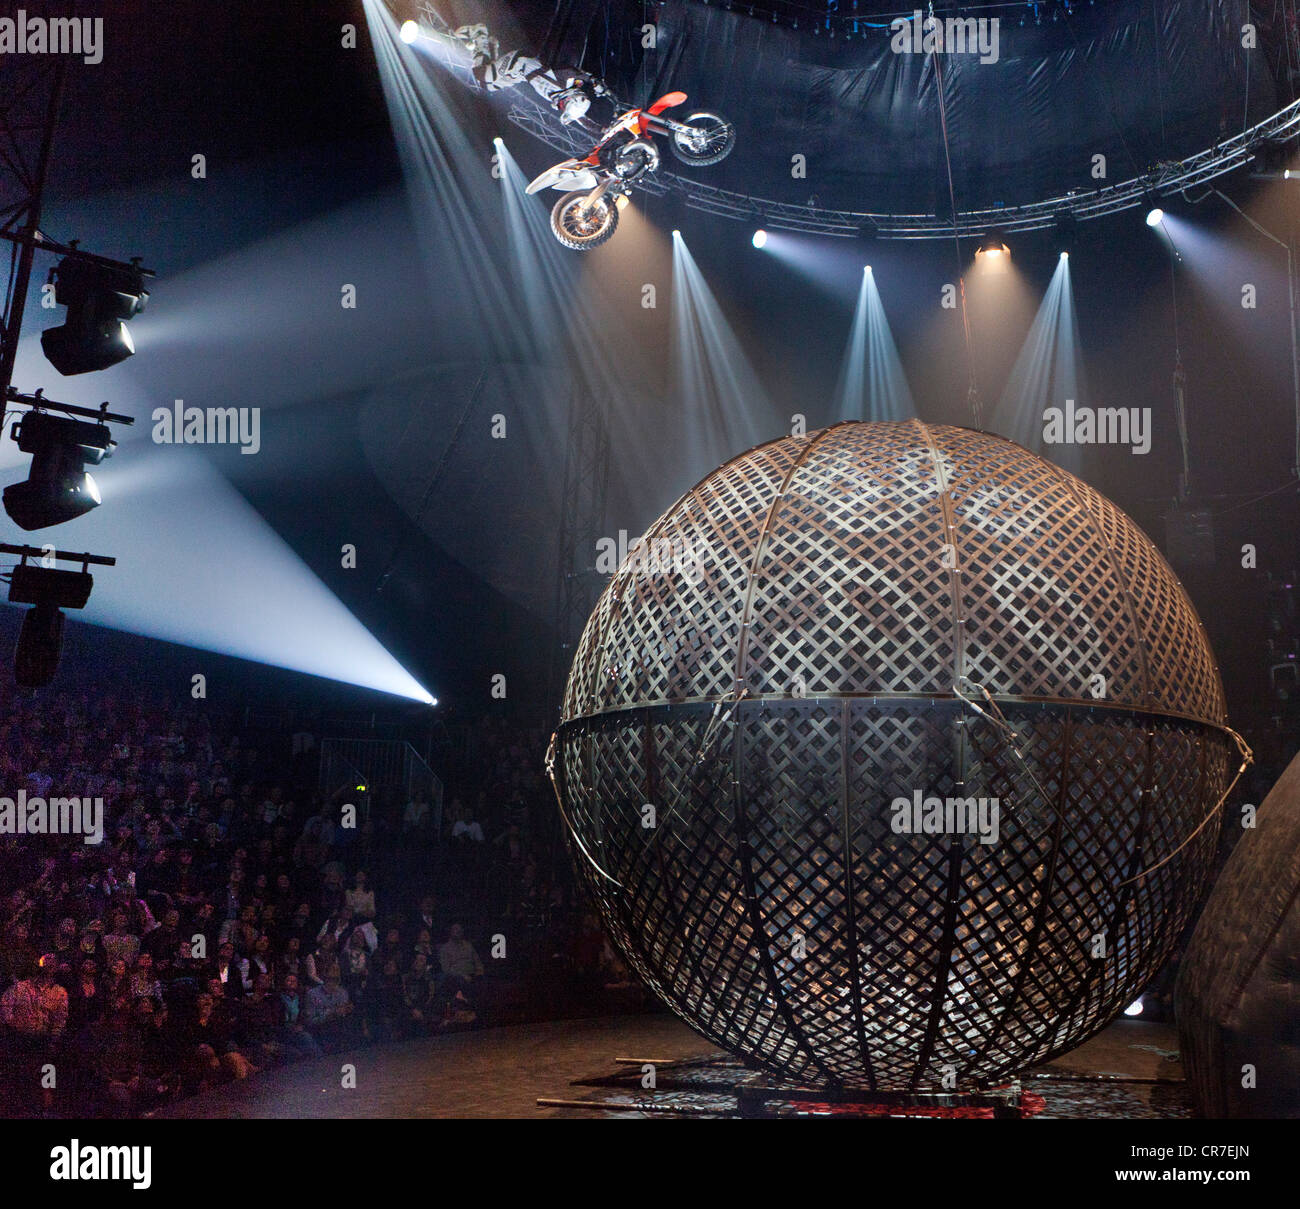 AirFours freestyle motorcycle act, FlicFlac Christmas Circus, premiere of Schrille Nacht, eilige Nacht, Westfalia - Stock Image